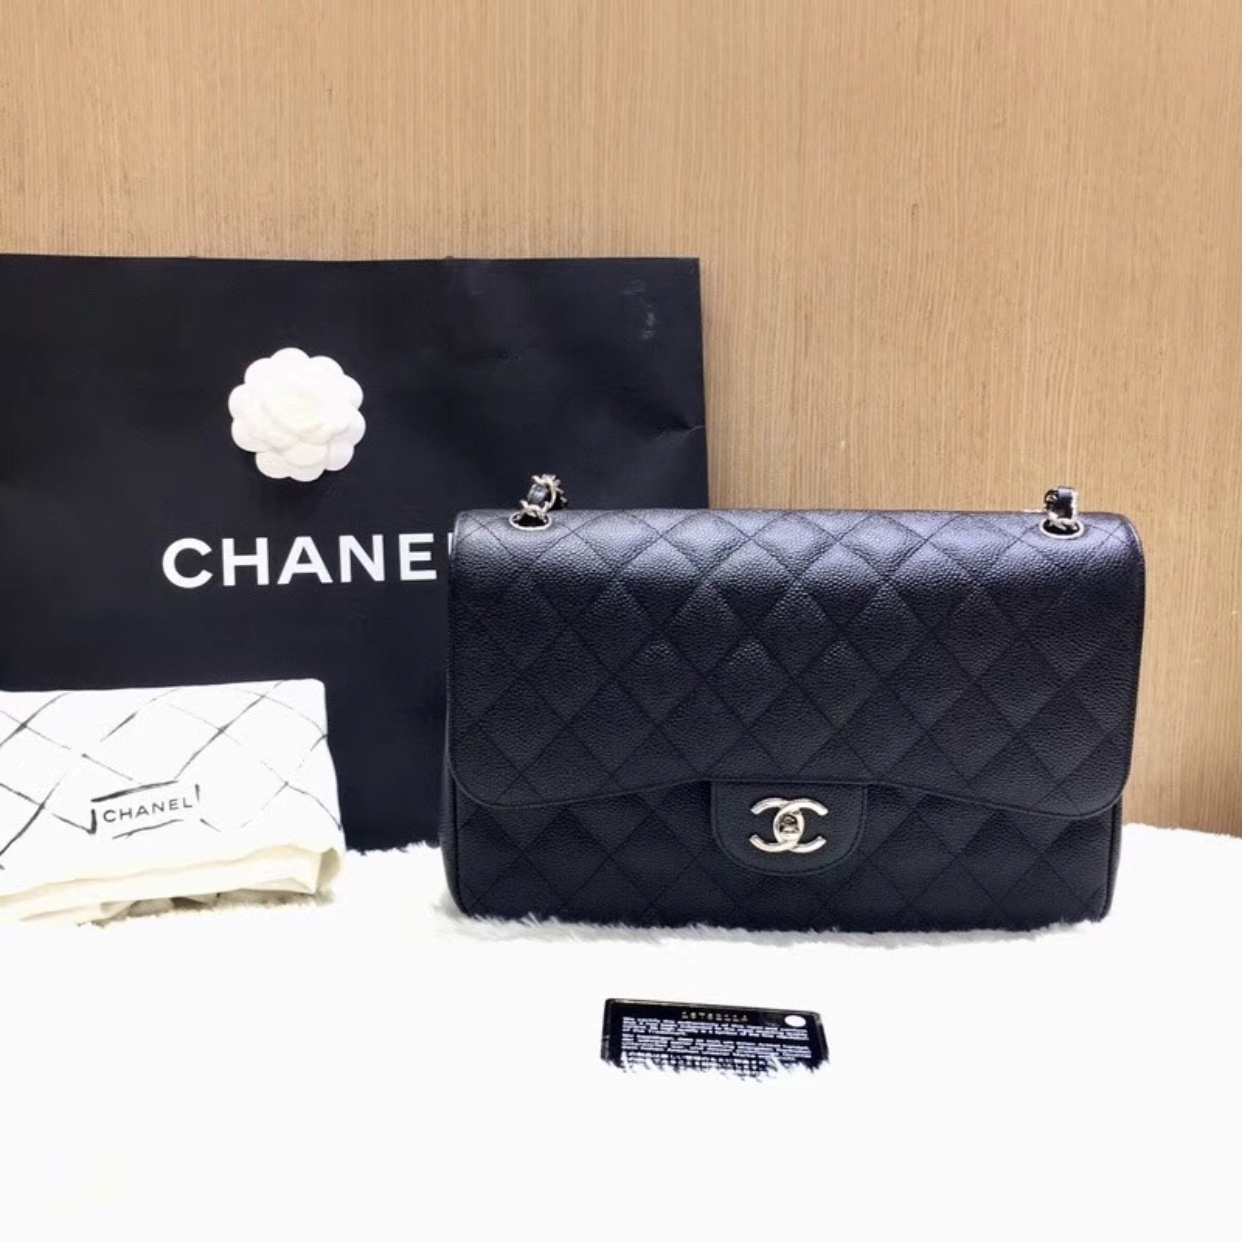 Authentic New Chanel Black Caviar Quilted and 40 similar items. 0de2de6a  7e88 4be2 b4f7 f944fc4942dd 82513fd673b96